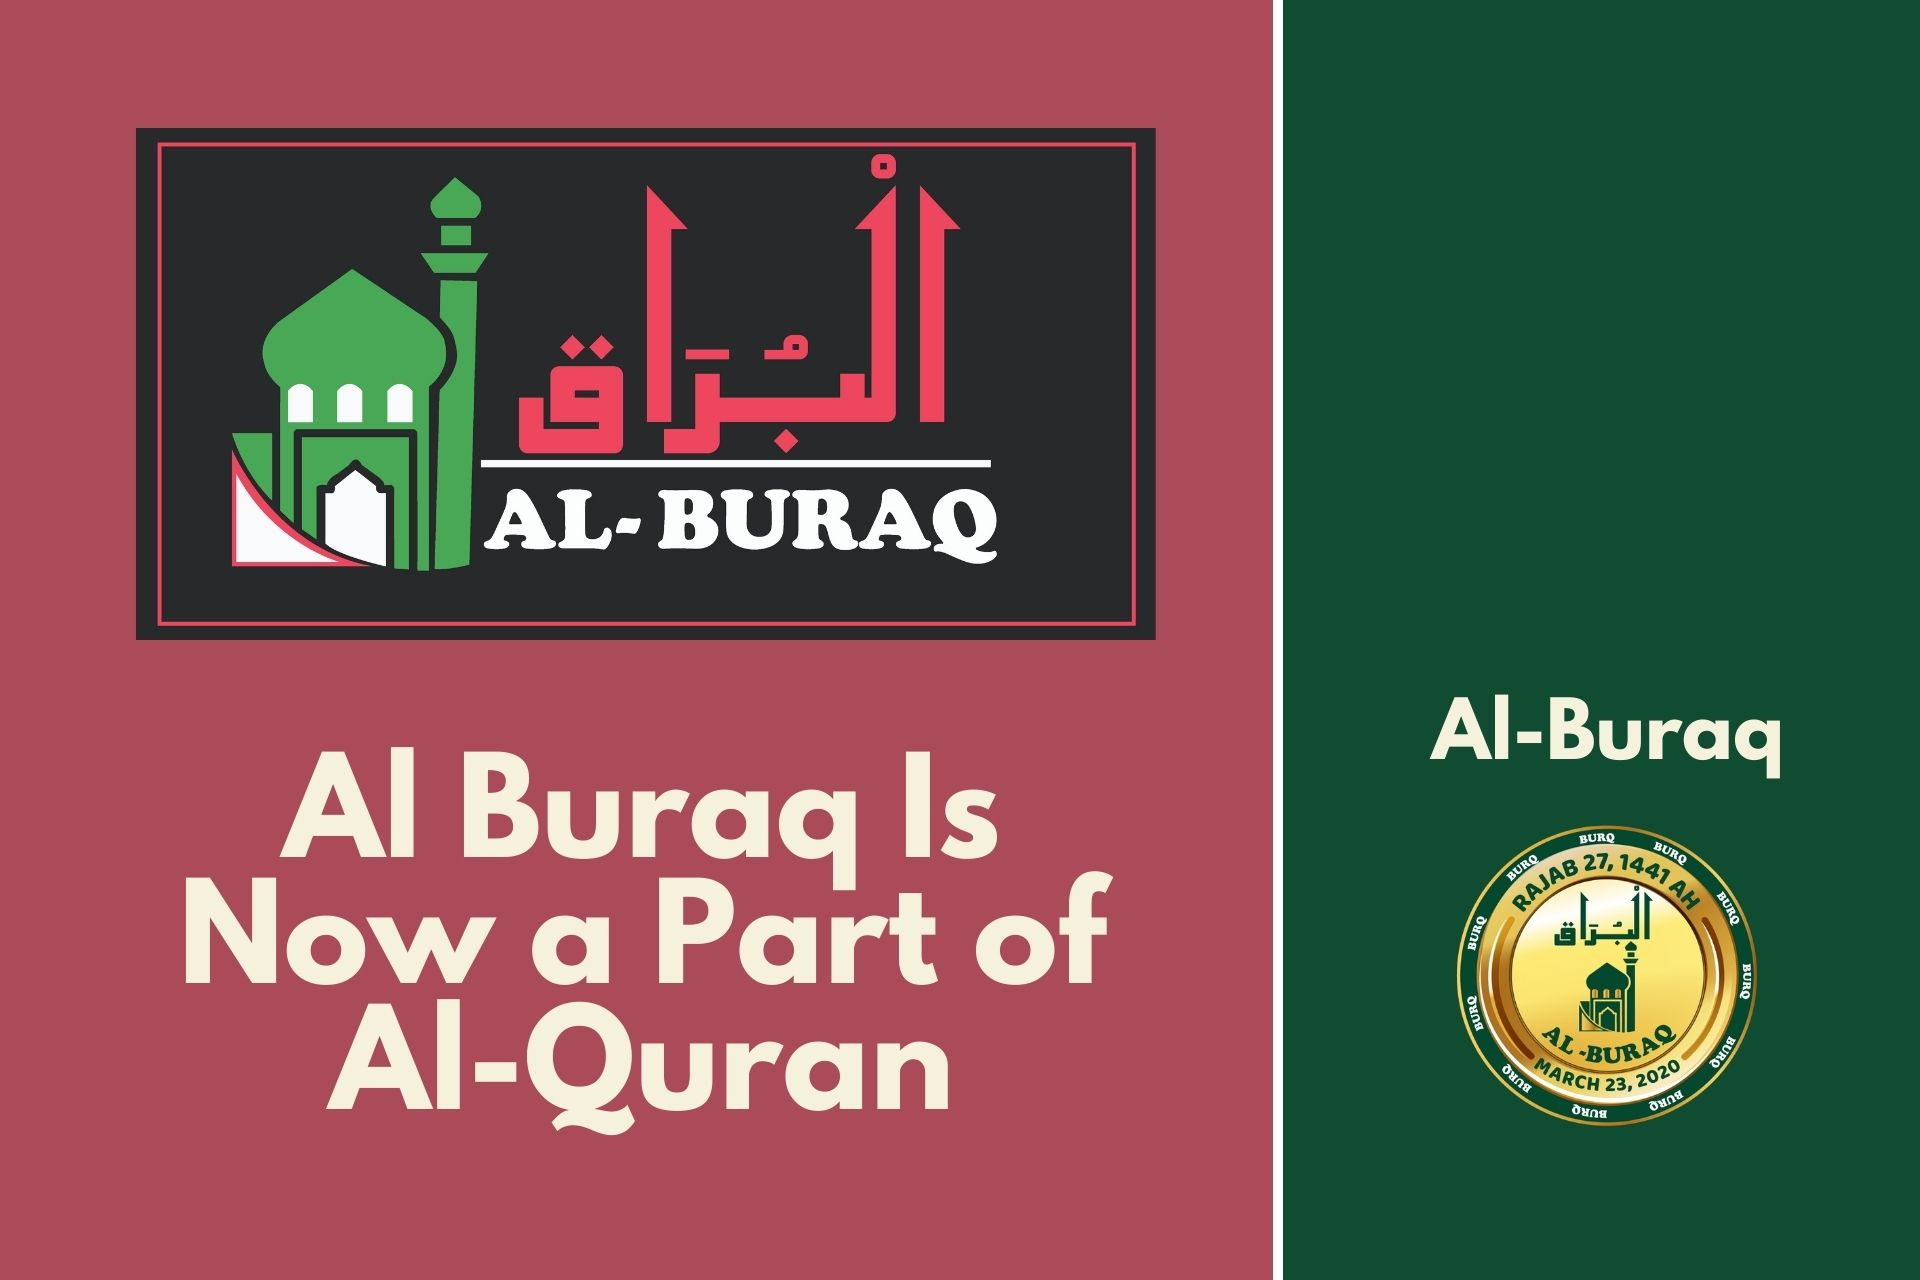 Al Buraq Is Now a Part of Al-Quran Promoting the Teachings of Holy Quran